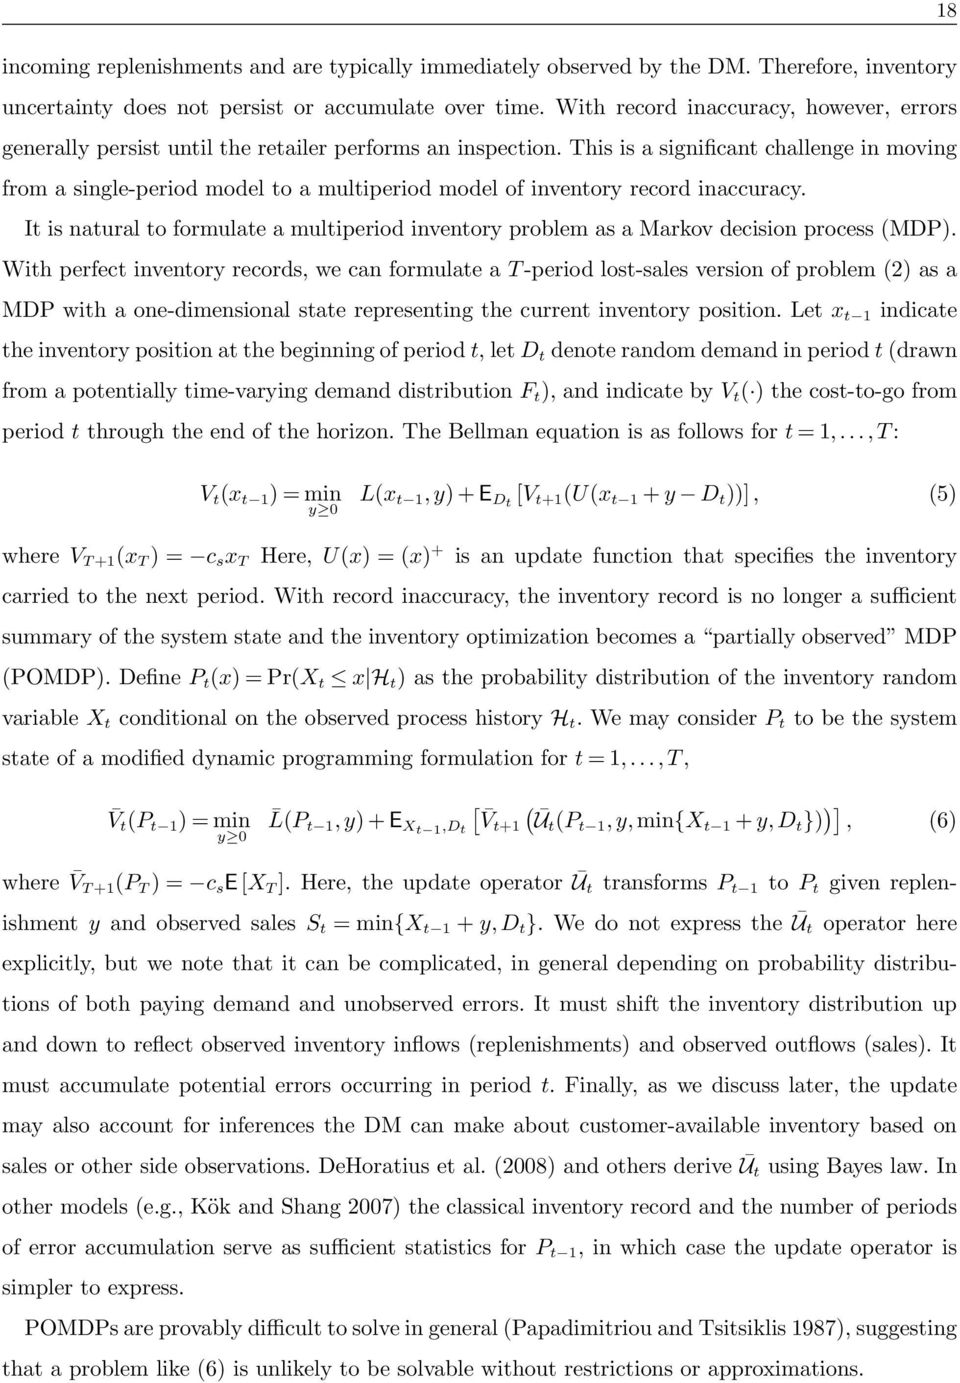 This is a significant challenge in moving from a single-period model to a multiperiod model of inventory record inaccuracy.